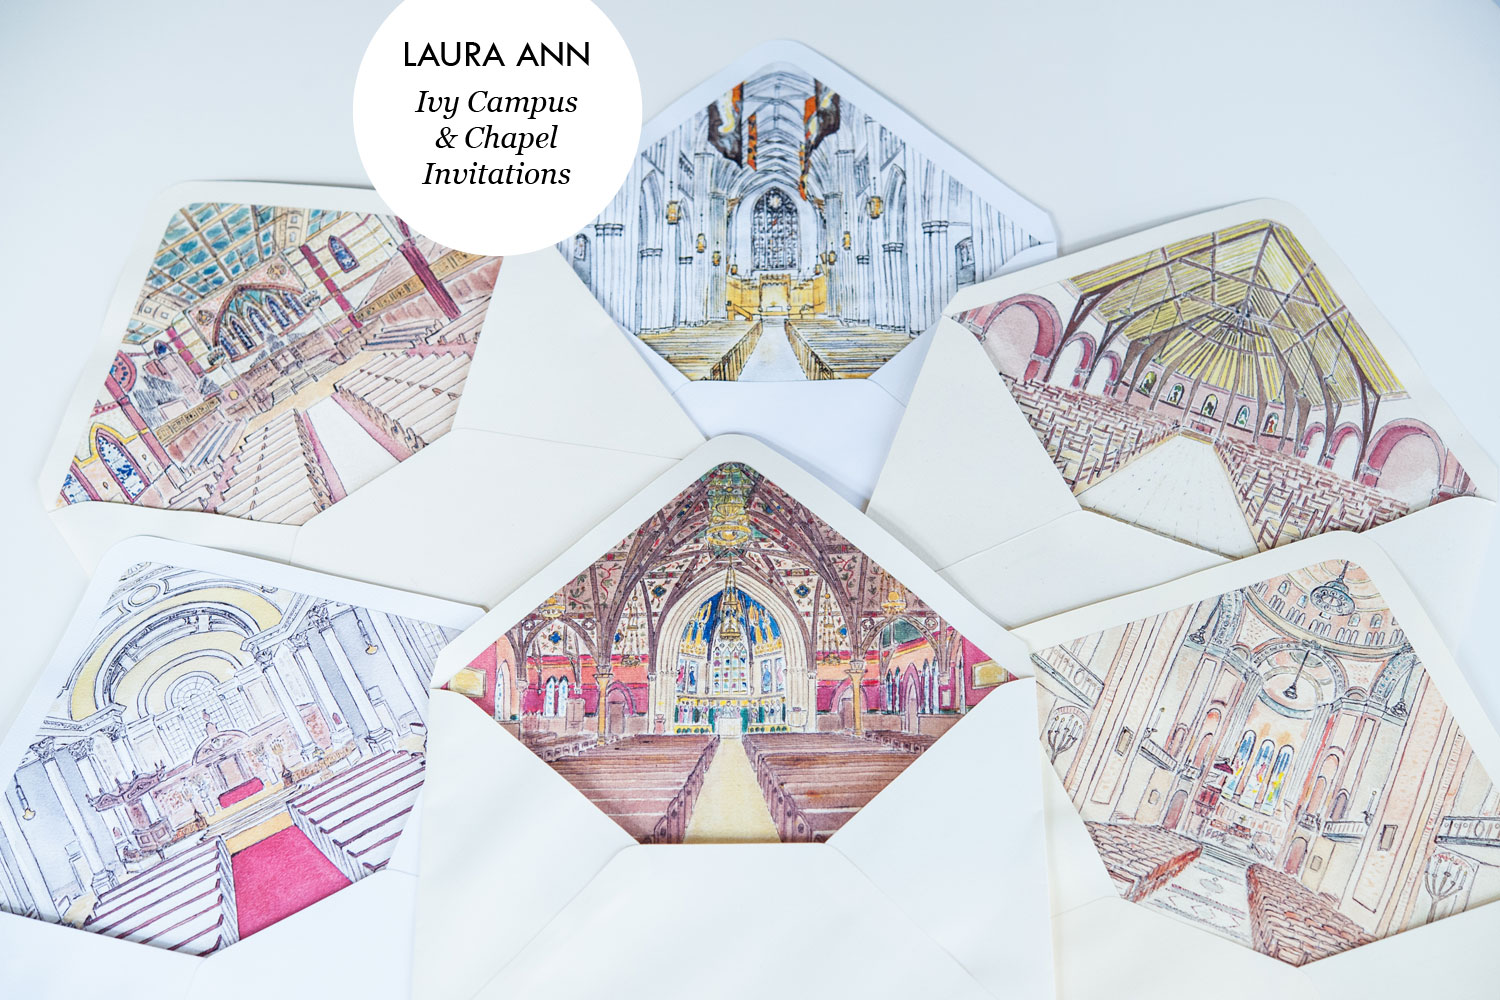 LAURA ANN Ivy Campus and Chapel Invitations